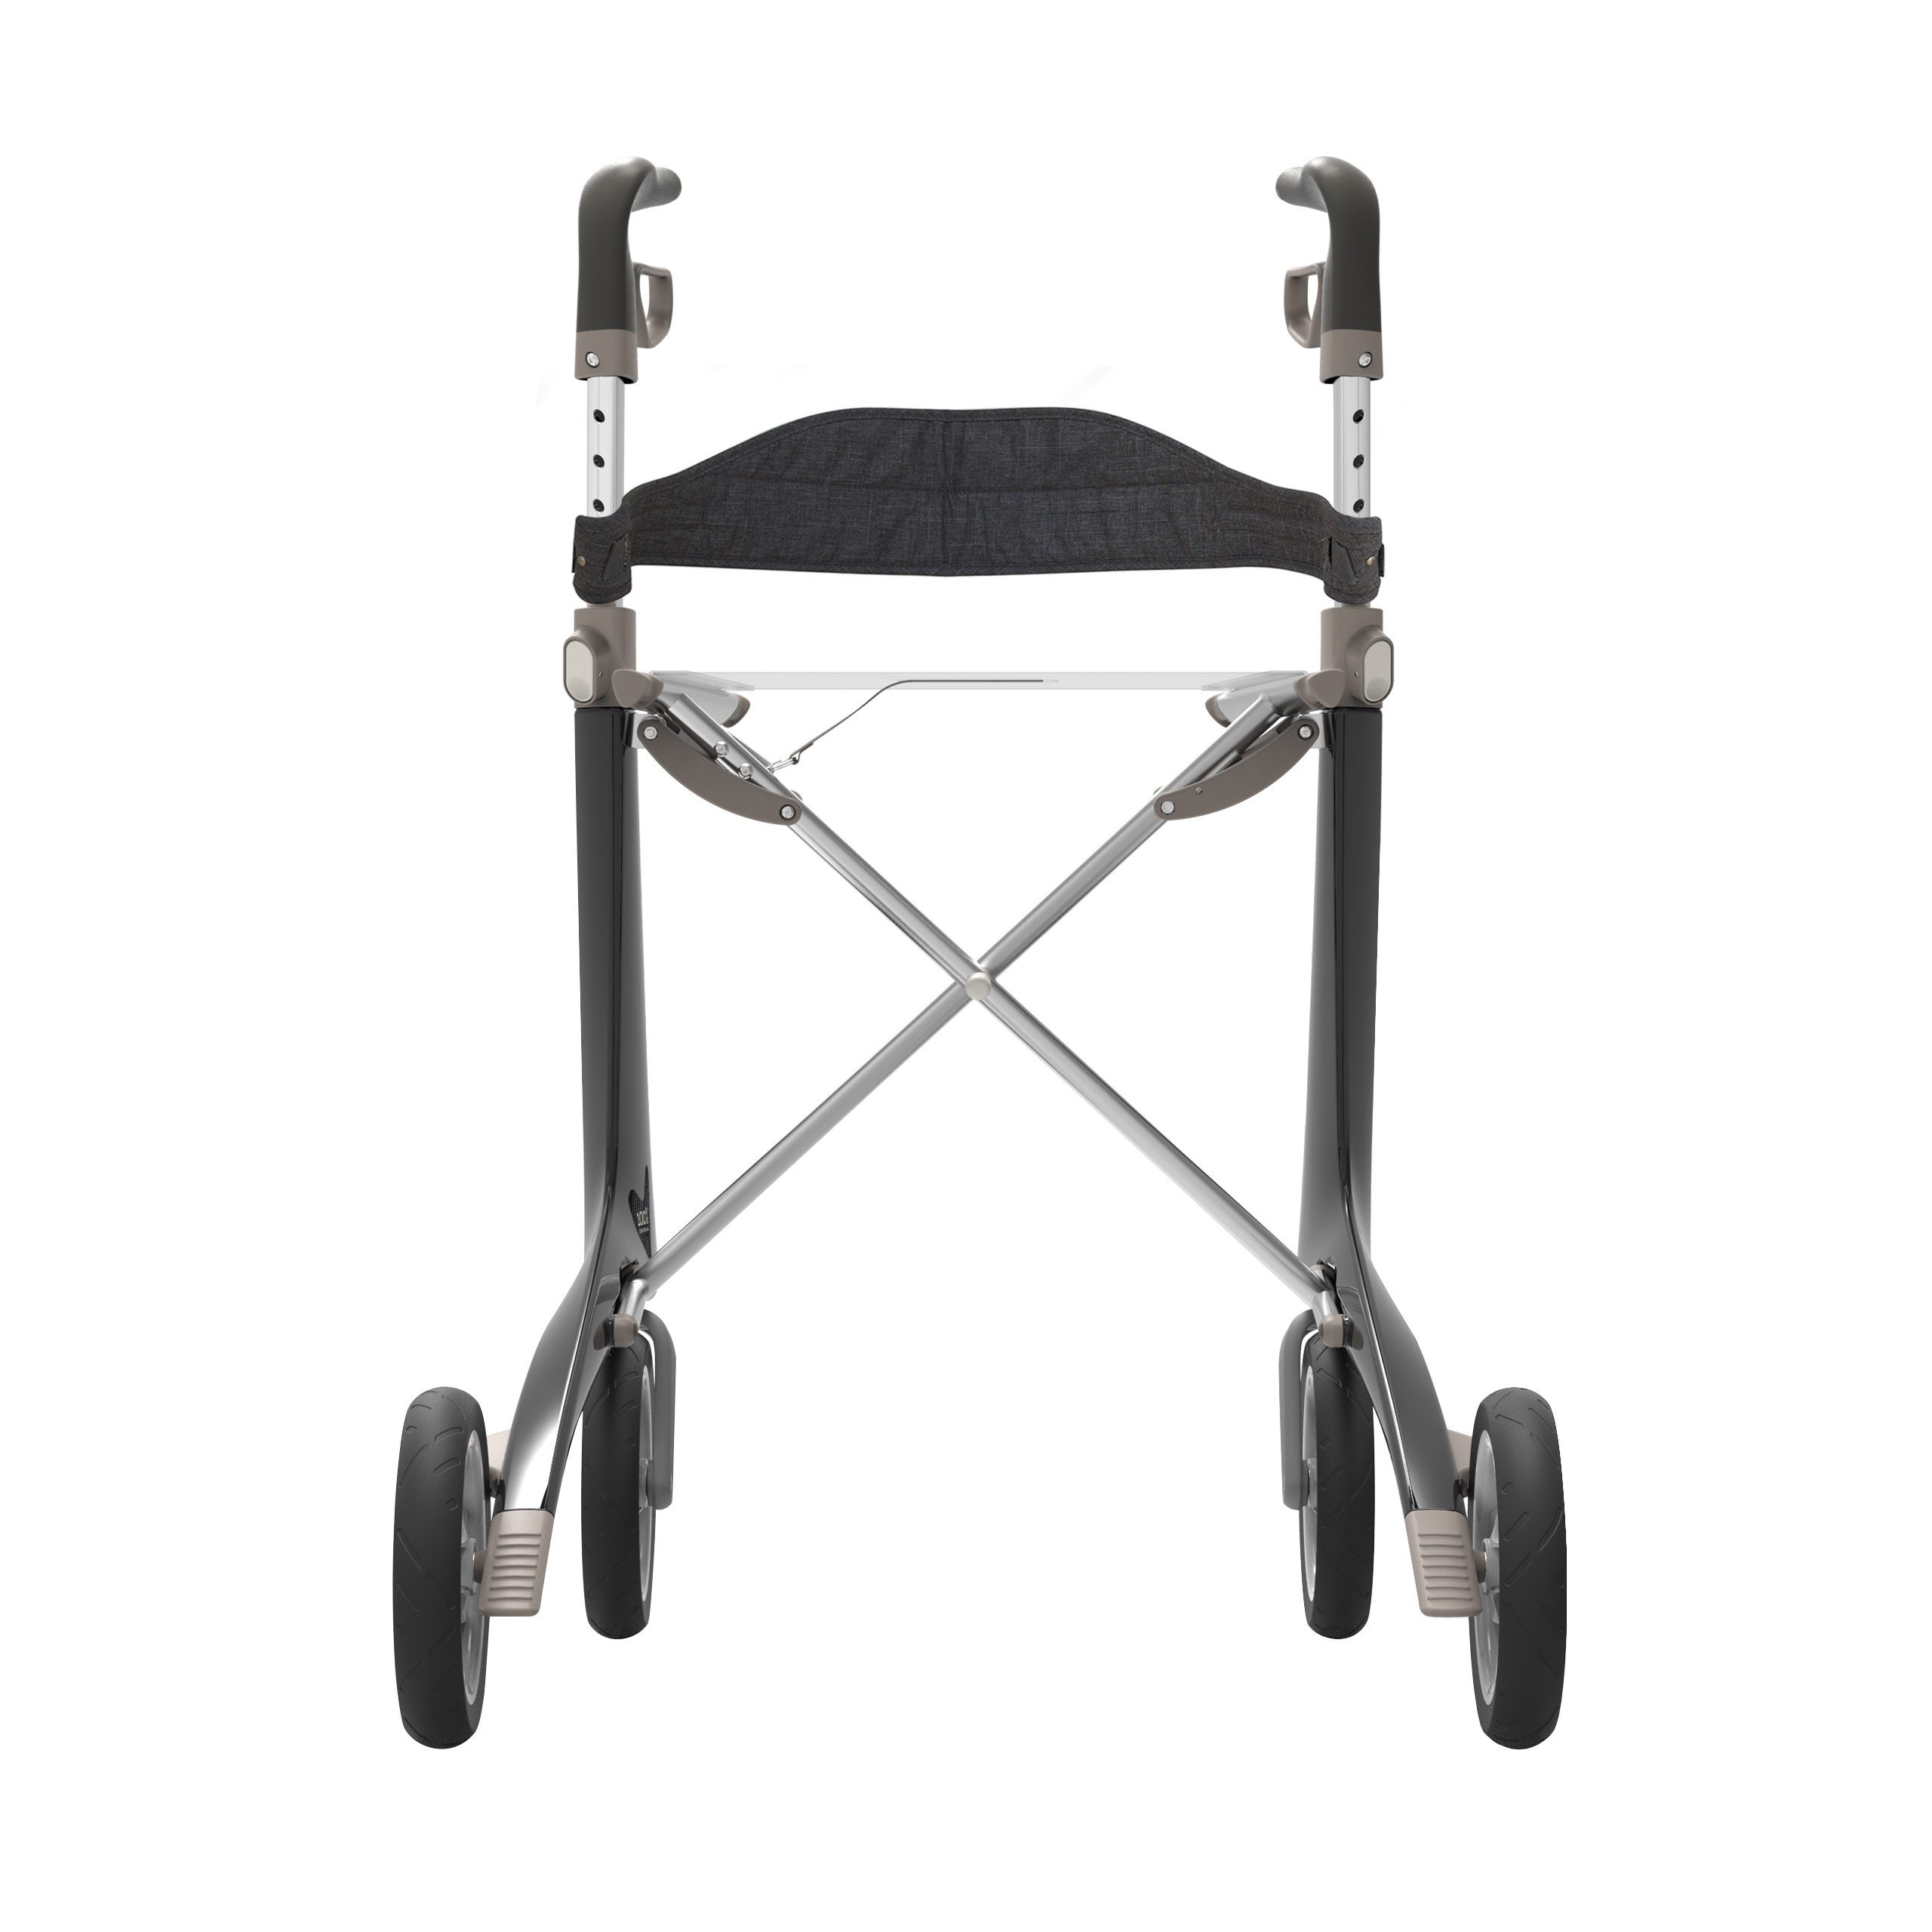 Backrest on the black Carbon Ultralight Rollator byACRE - seen from the back